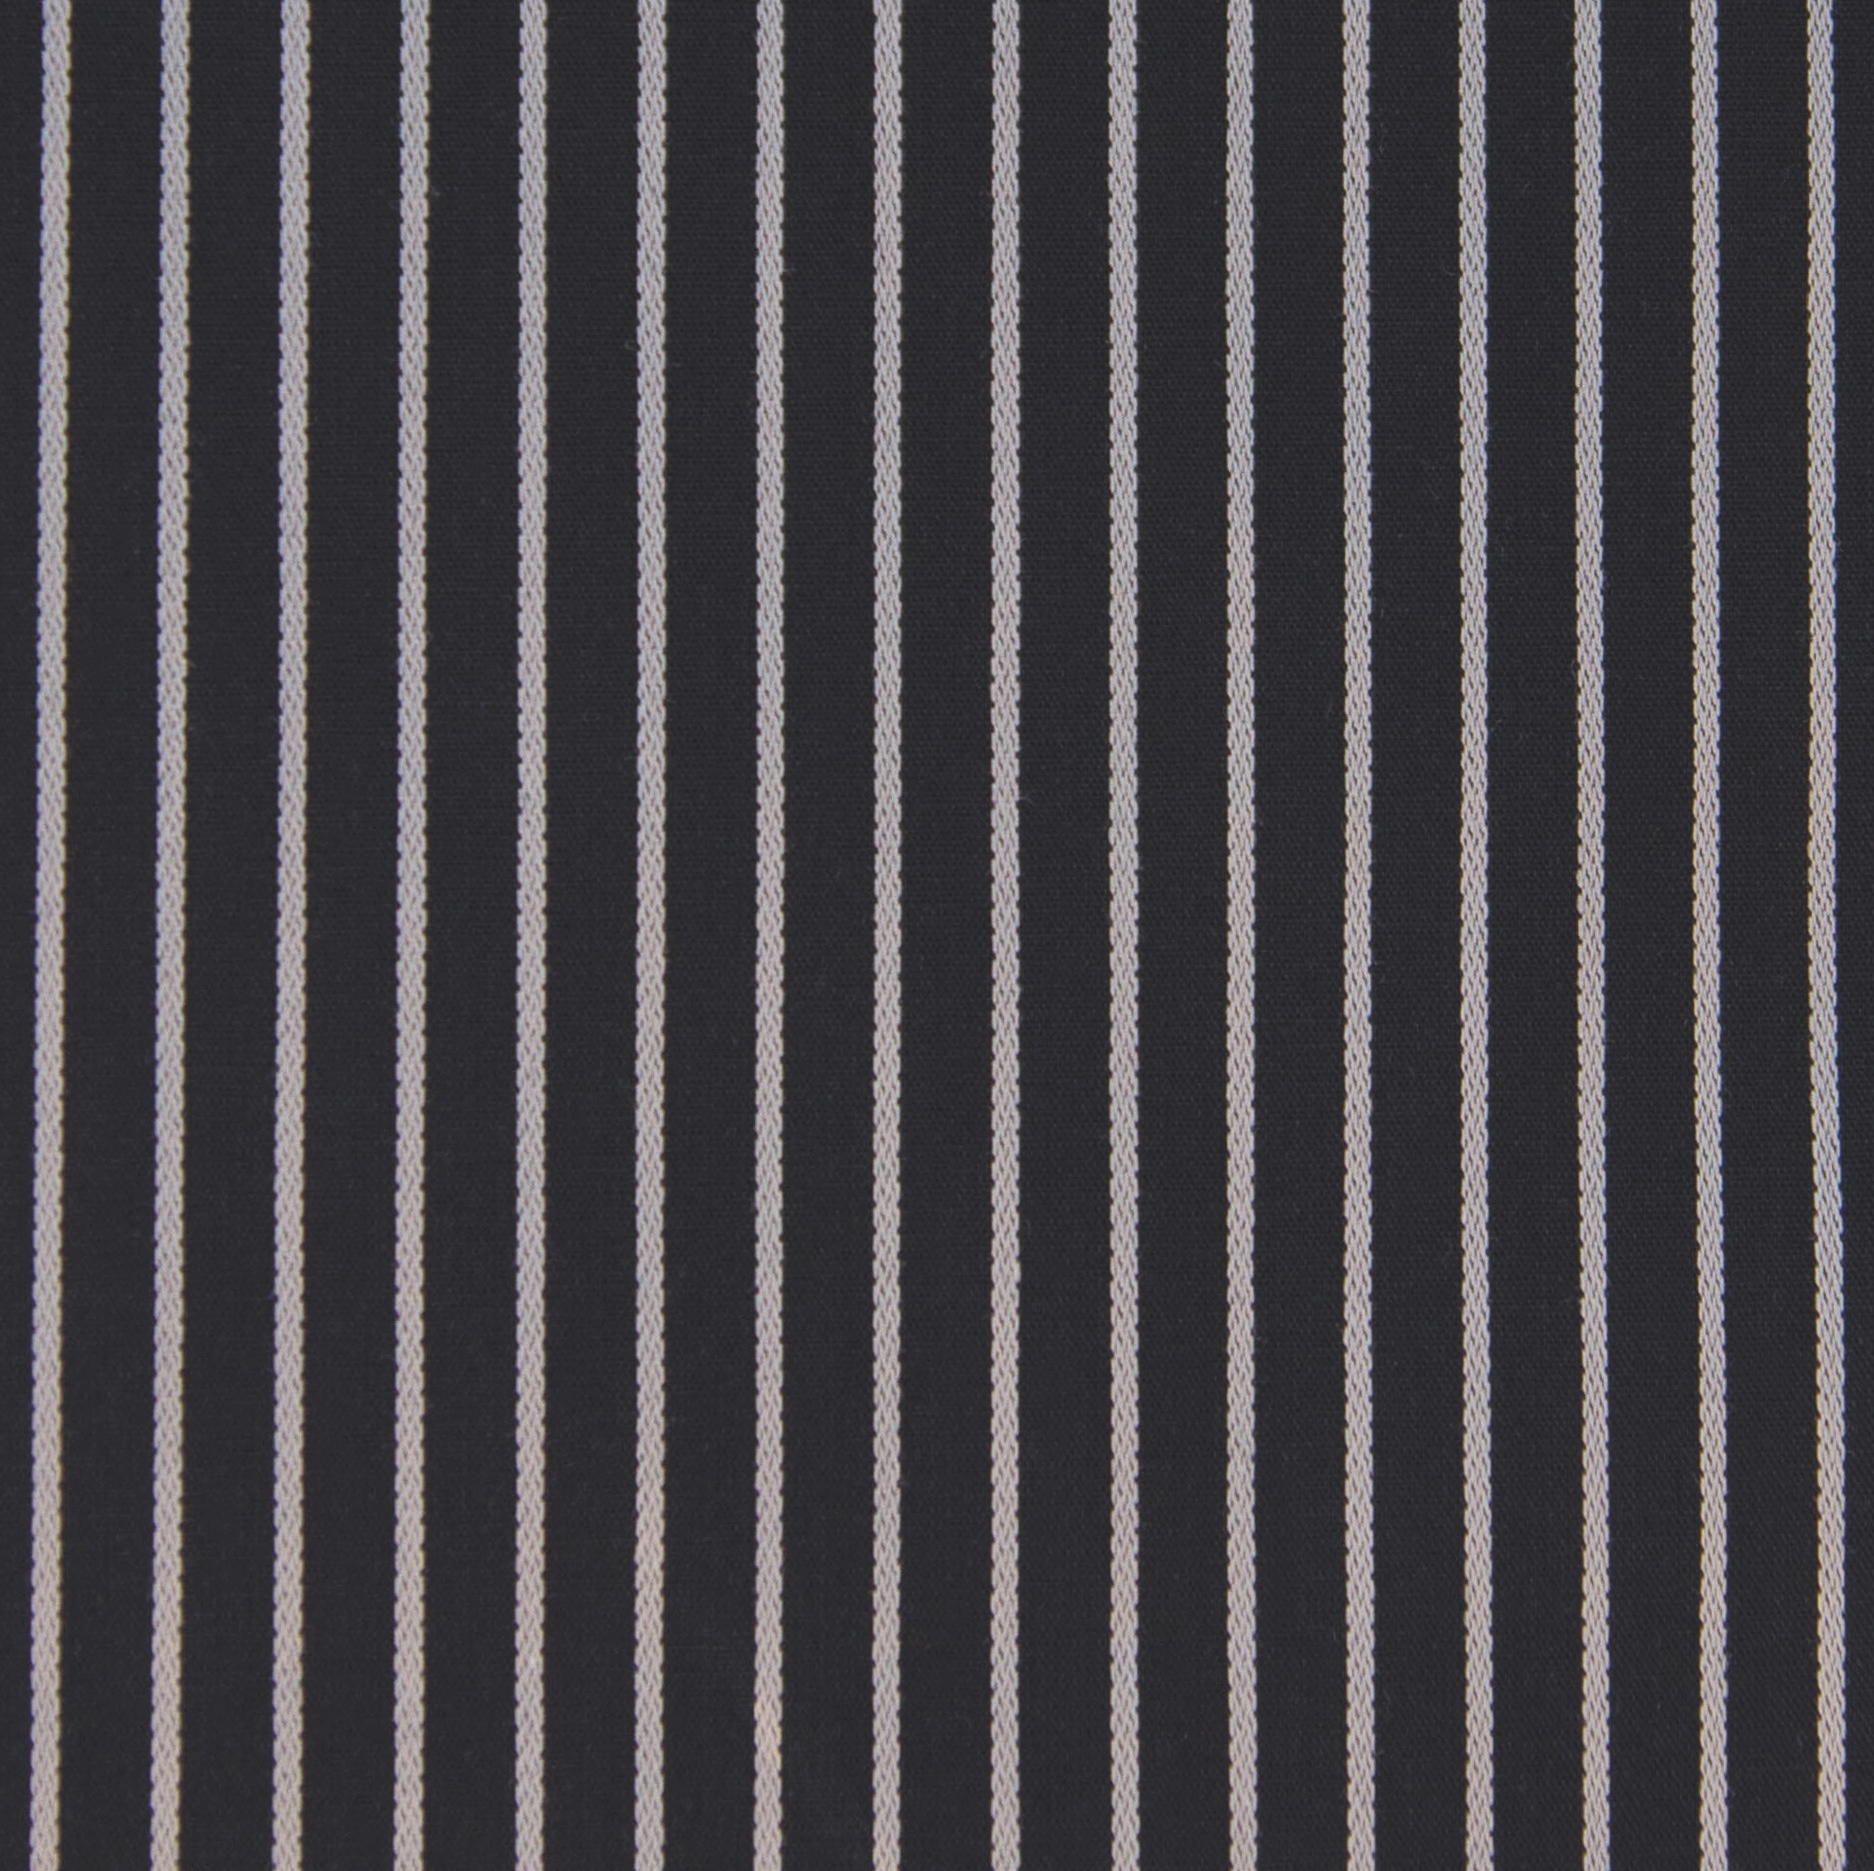 Buy tailor made shirts online - Presidents Range (CLEARANCE) - Black with Grey Stripe